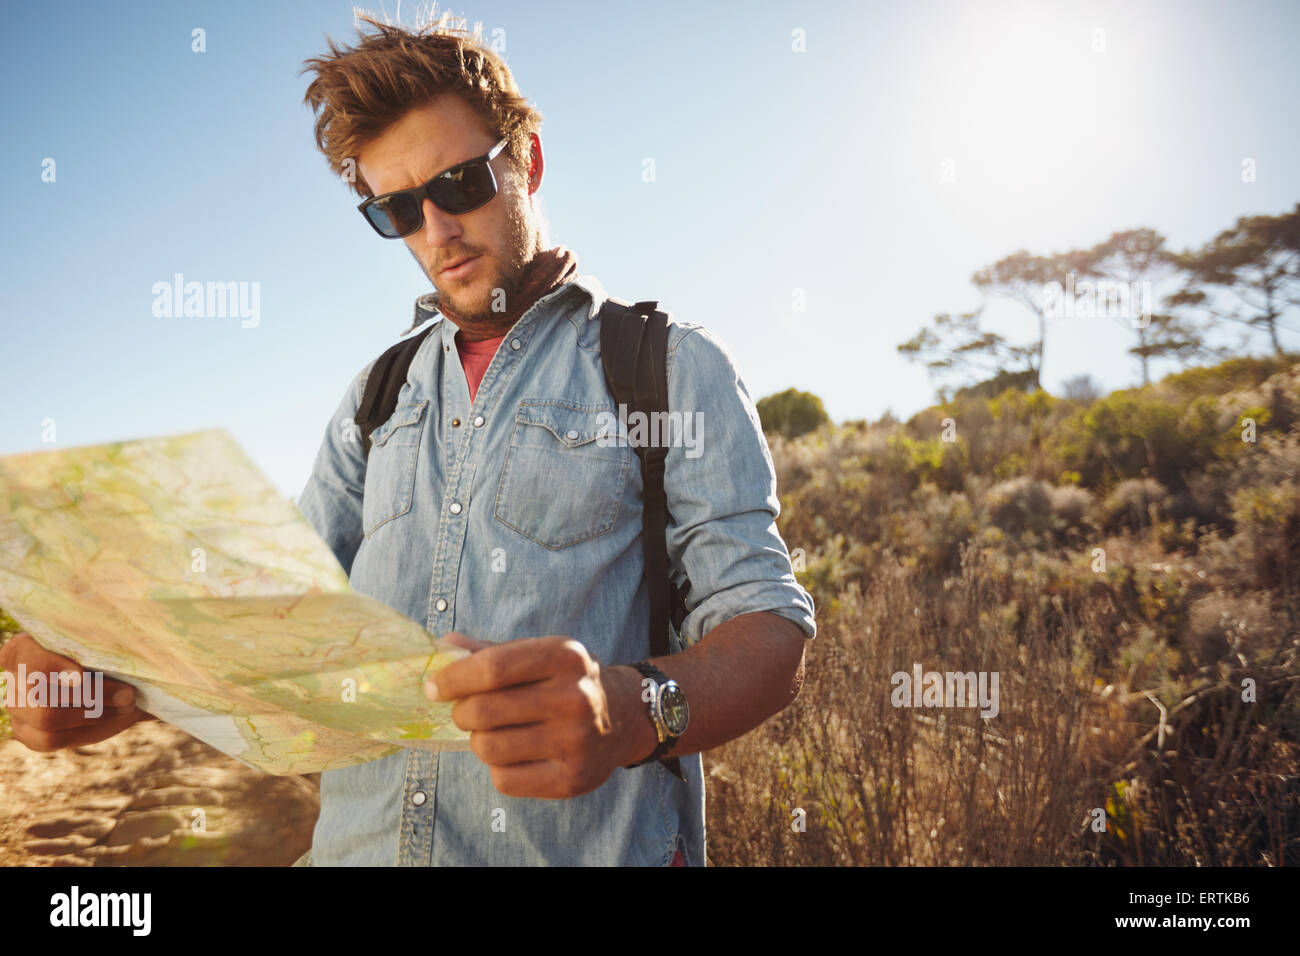 Shot of a handsome hiker using a map. Hiker using a map to navigate his hike on a summer day. - Stock Image